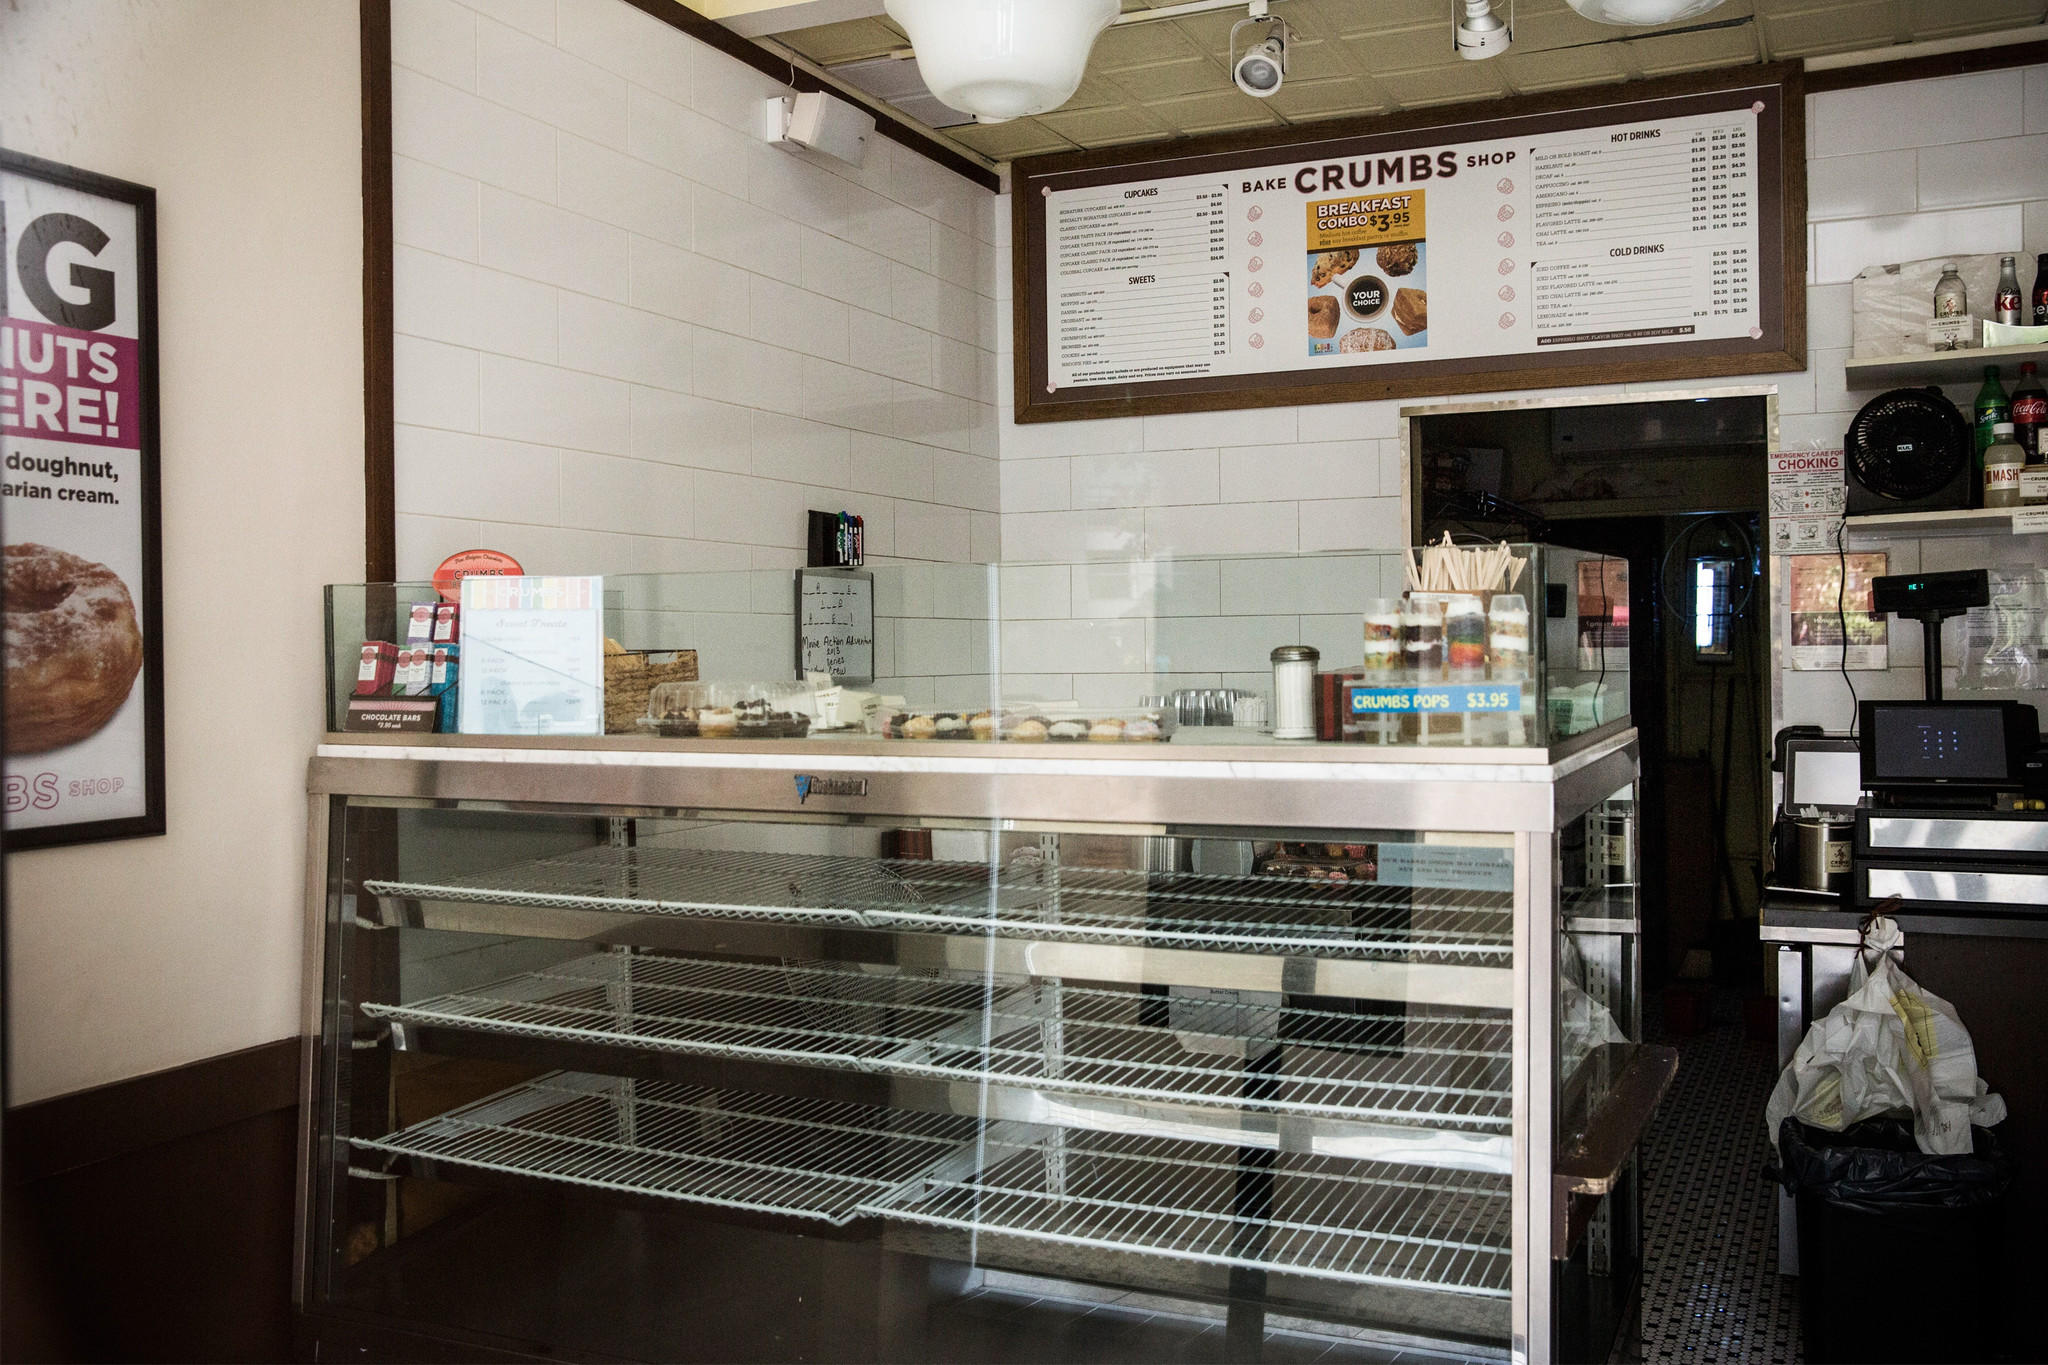 A Crumbs Bake Shop sits empty after it was announced Crumbs is closing all its stores on July 8, 2014 in New York City. Crumbs has closed all of its locations after low sales, a reported a loss of $18.2 million last year, and after being de-listed by Nasdaq last week.